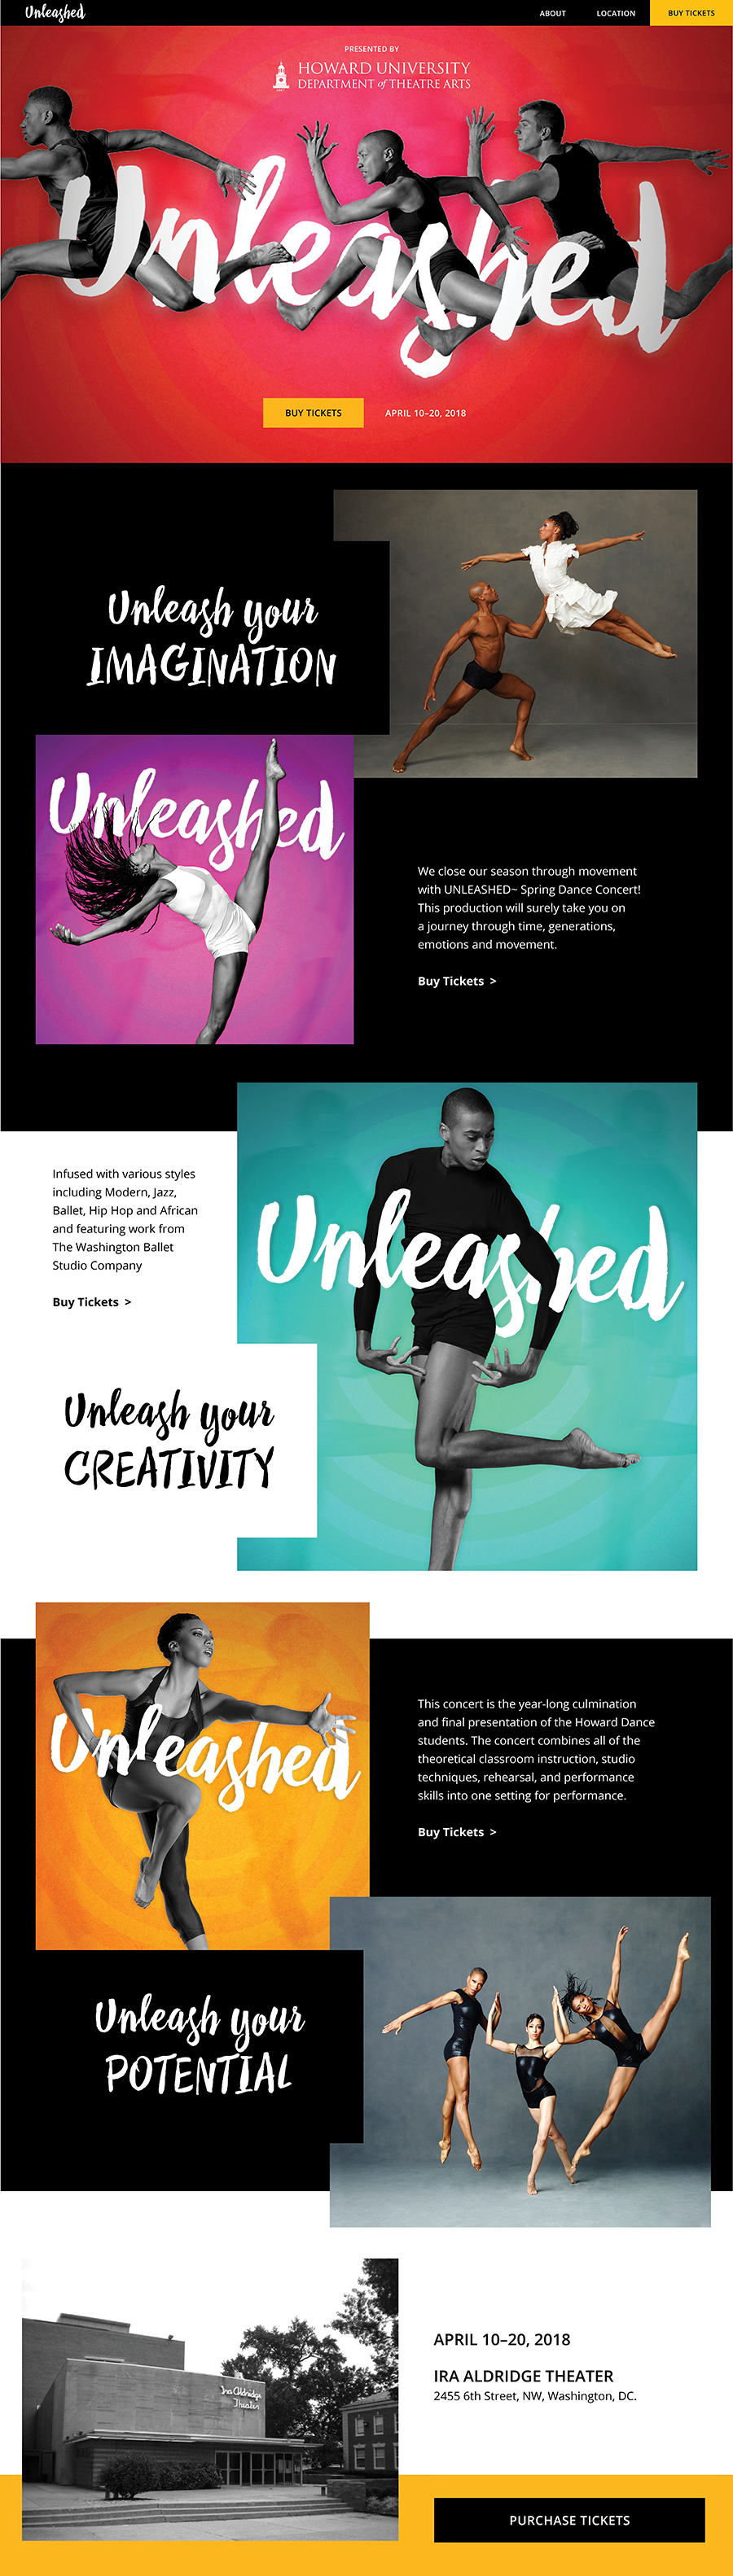 unleashed-dance-showcase-website